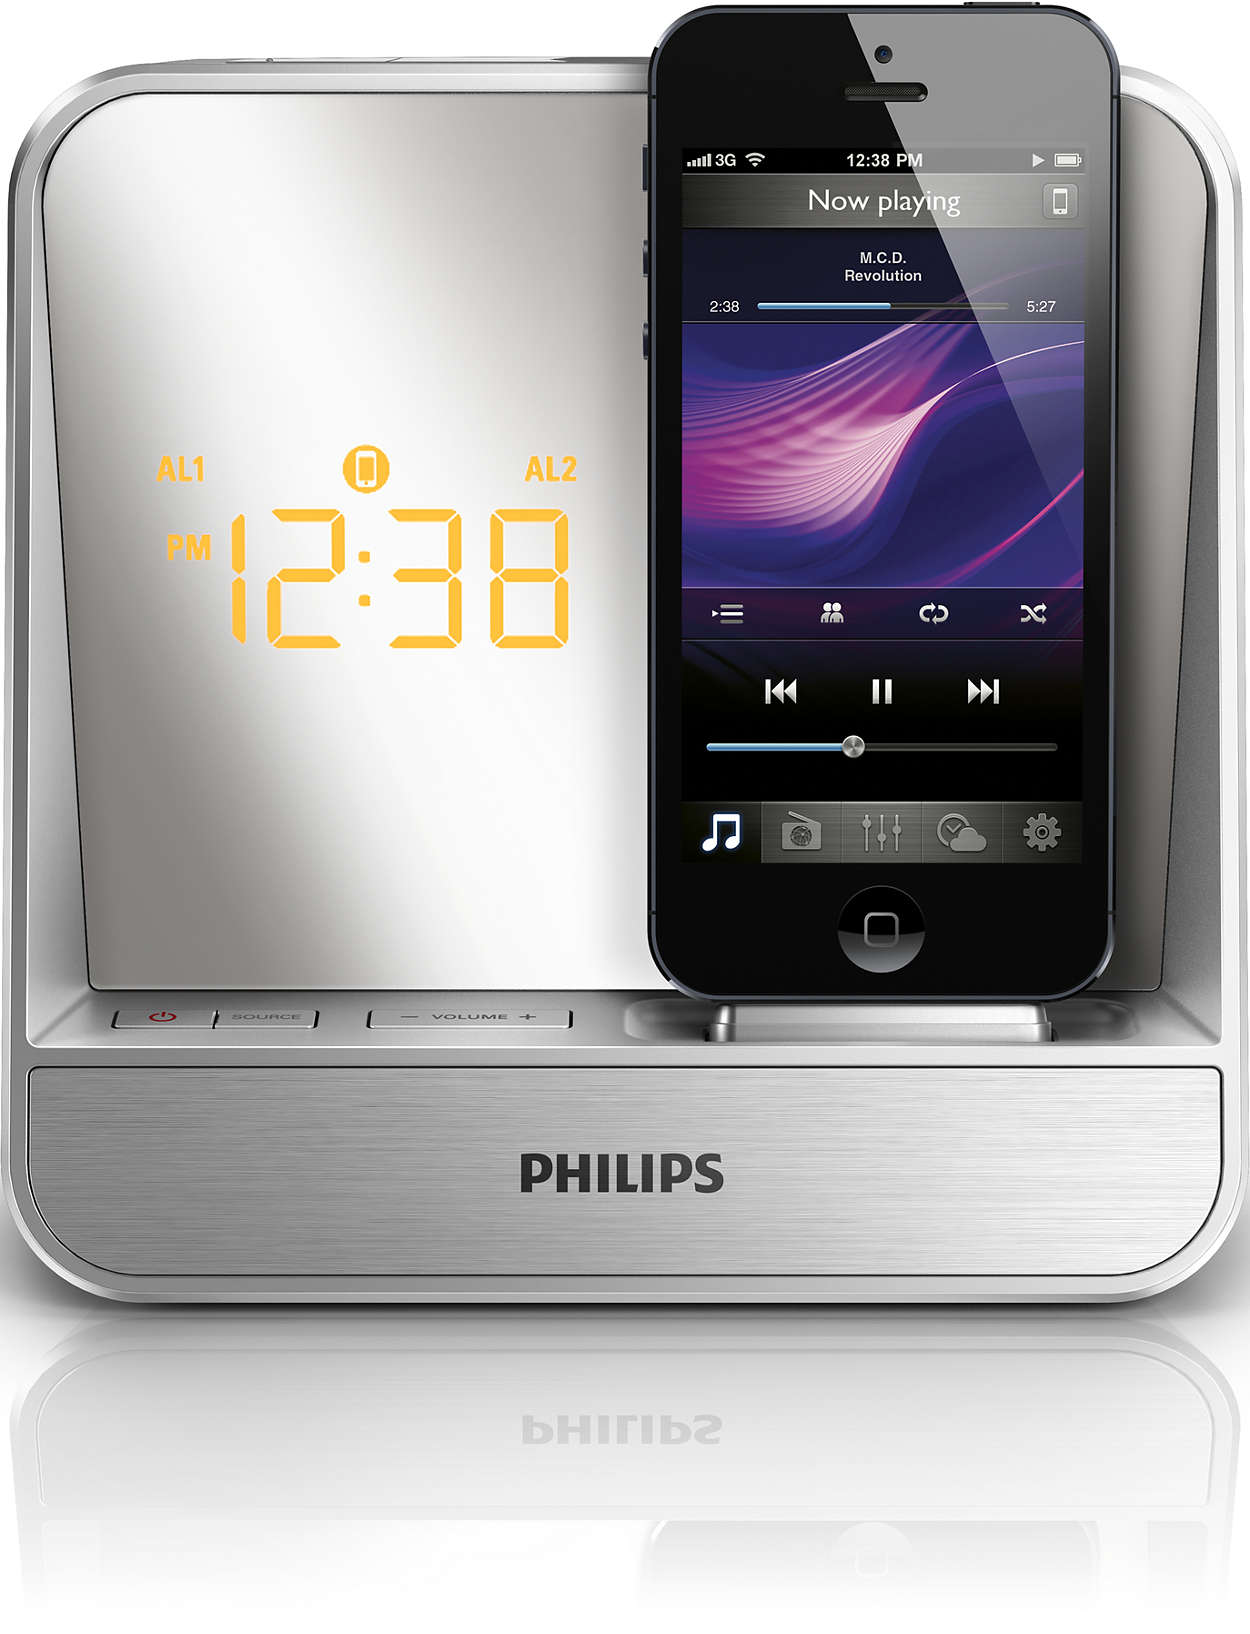 alarm clock radio for ipod iphone aj5305d 05 philips. Black Bedroom Furniture Sets. Home Design Ideas